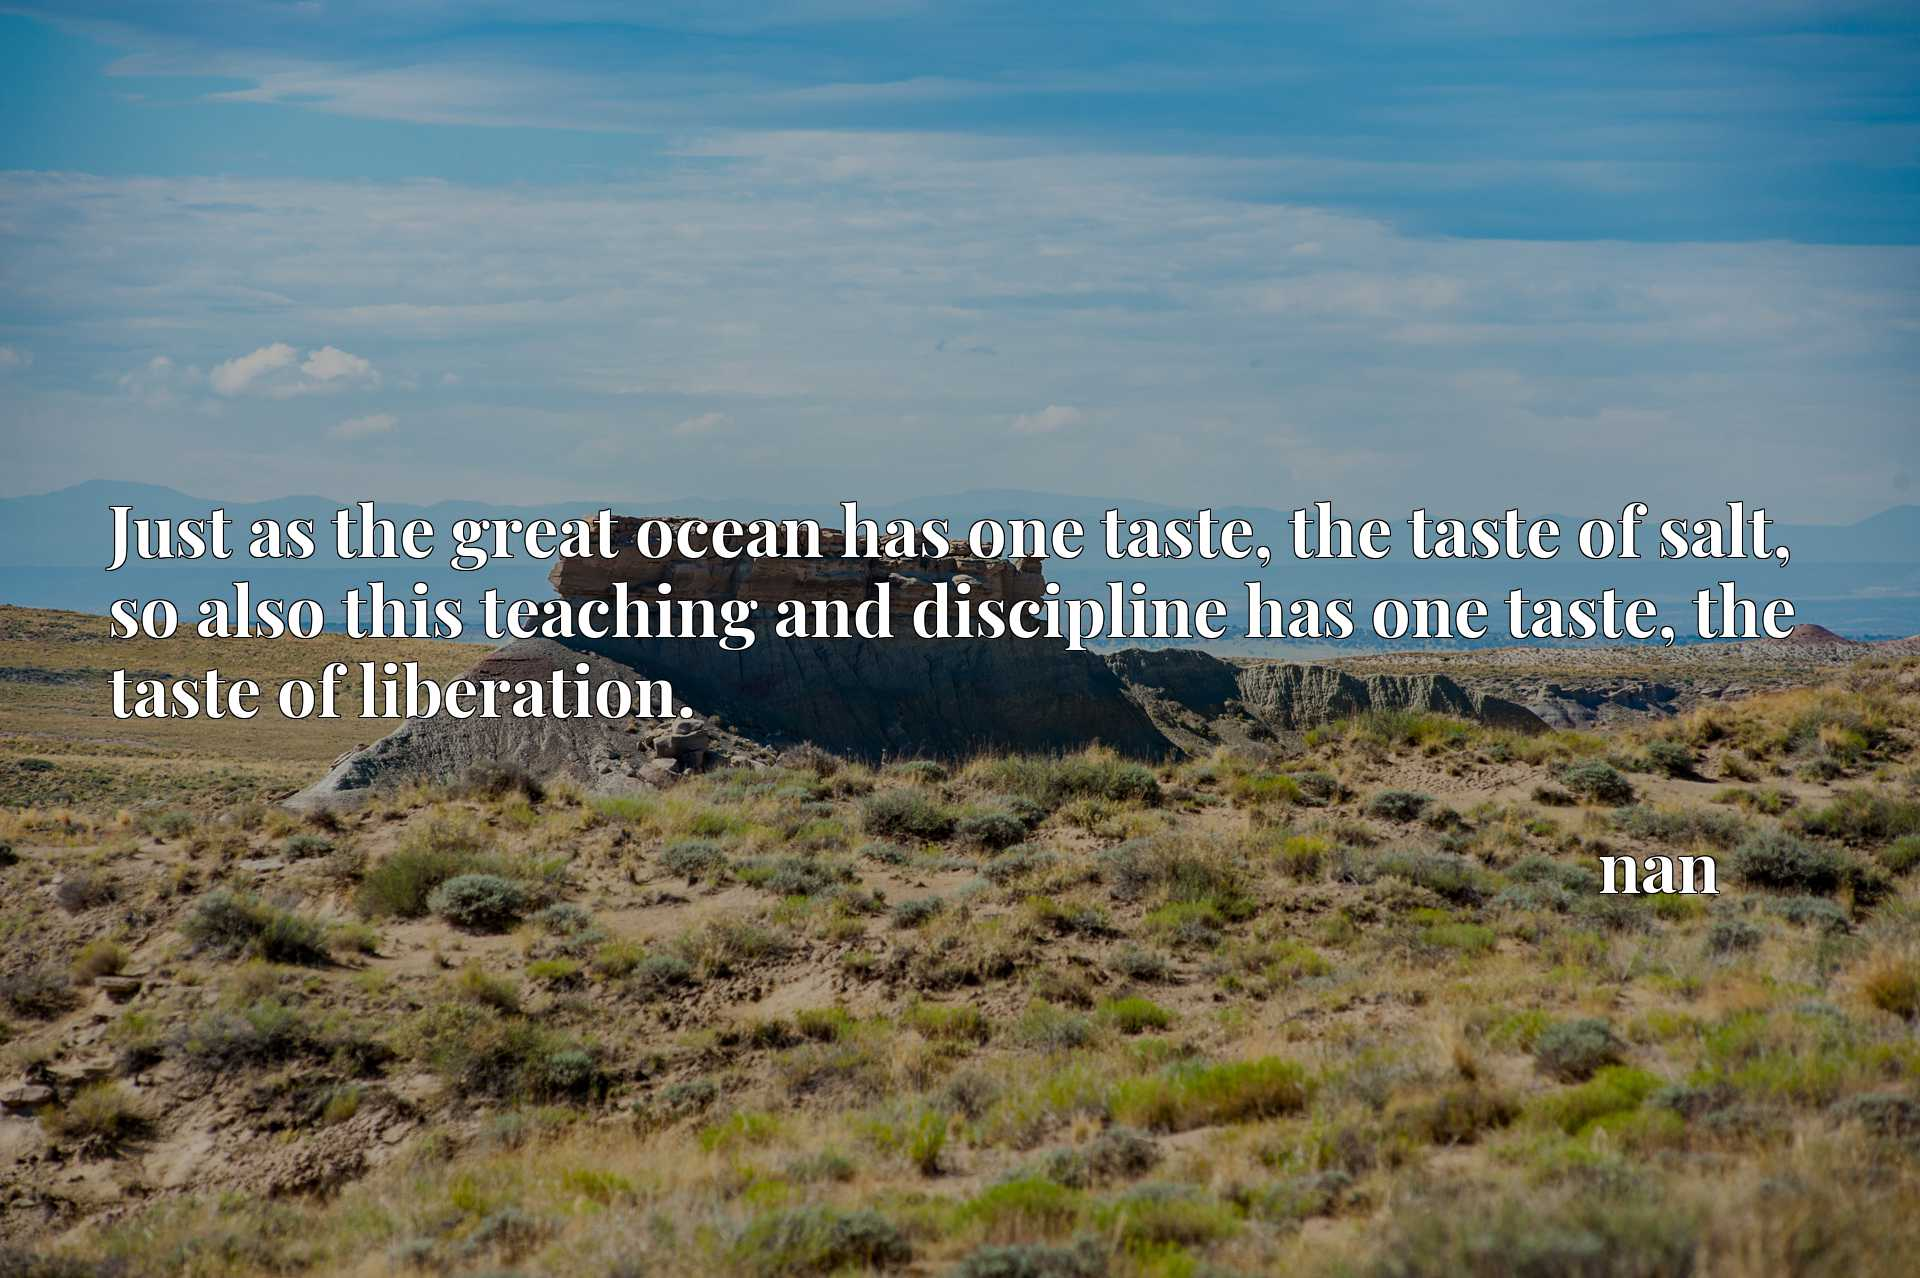 Just as the great ocean has one taste, the taste of salt, so also this teaching and discipline has one taste, the taste of liberation.